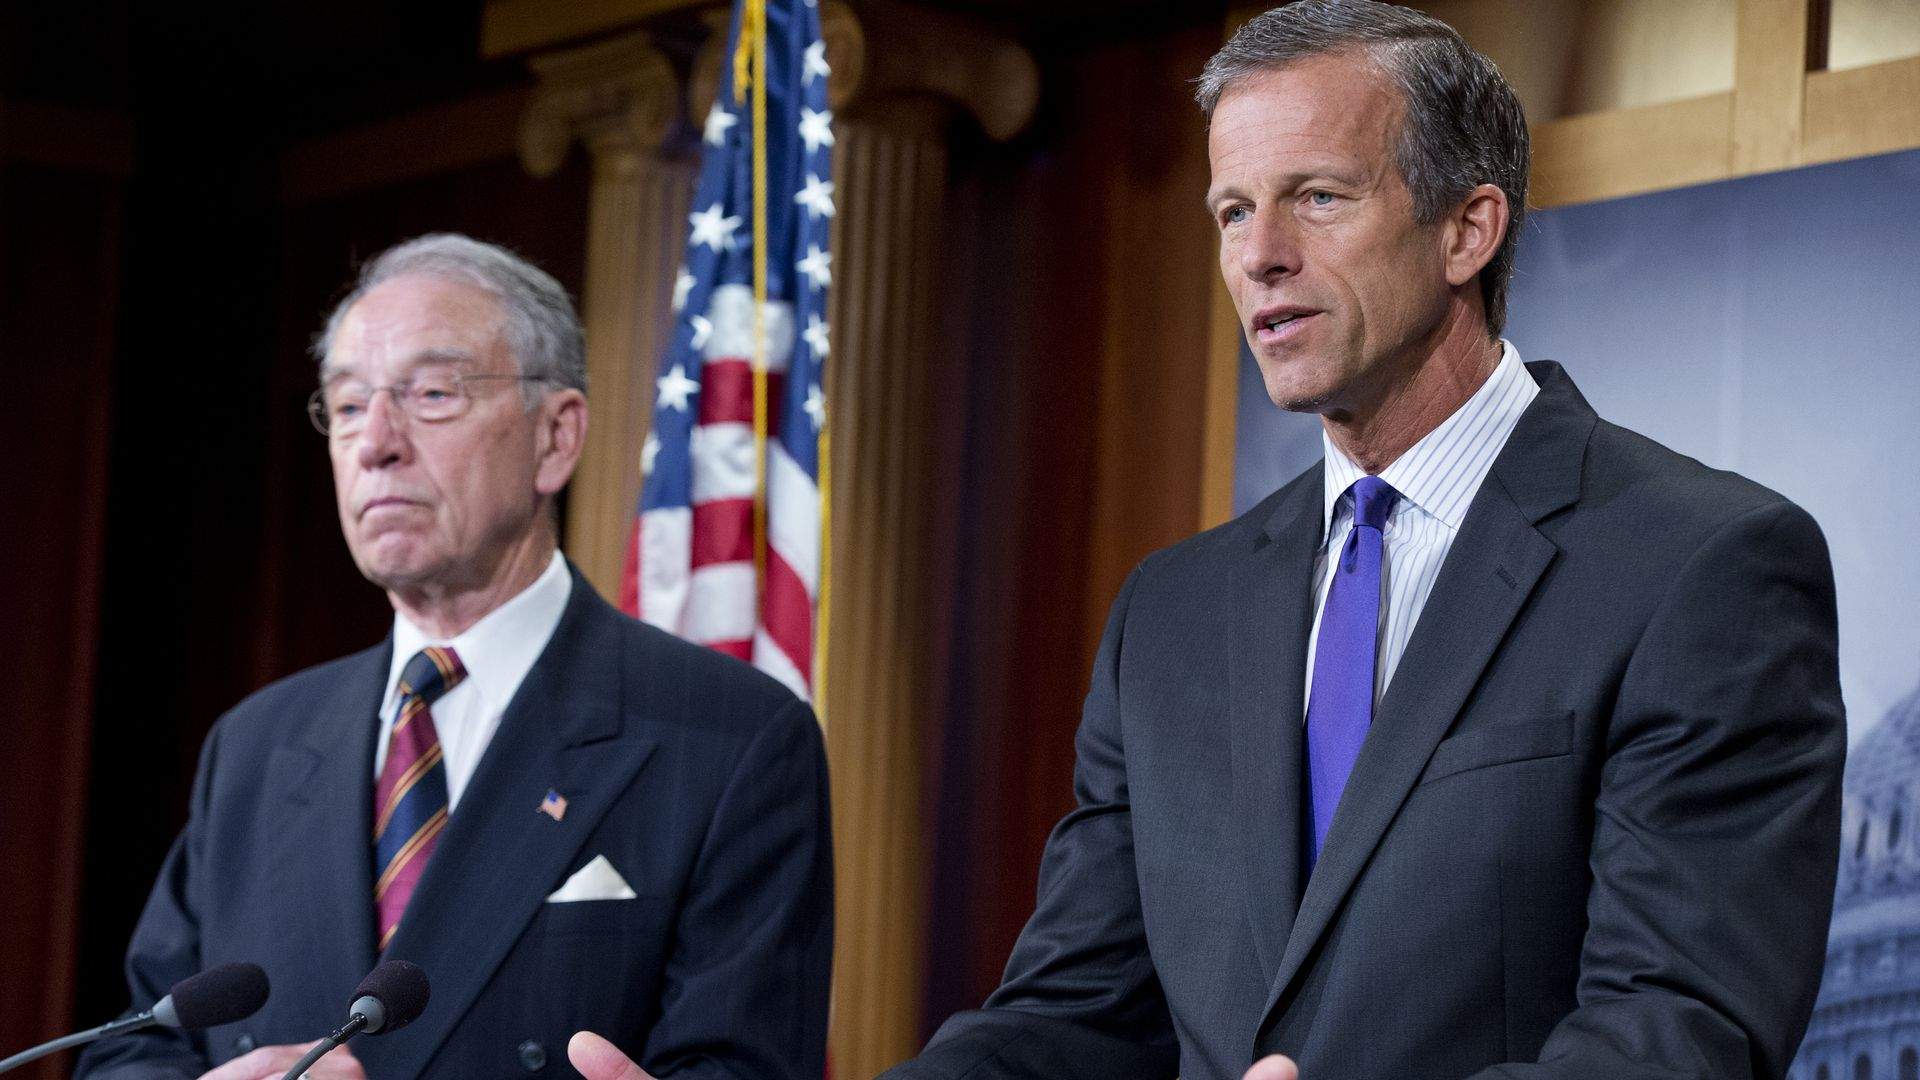 Senators Chuck Grassley and John Thune at the press conference, with an American flag behind them